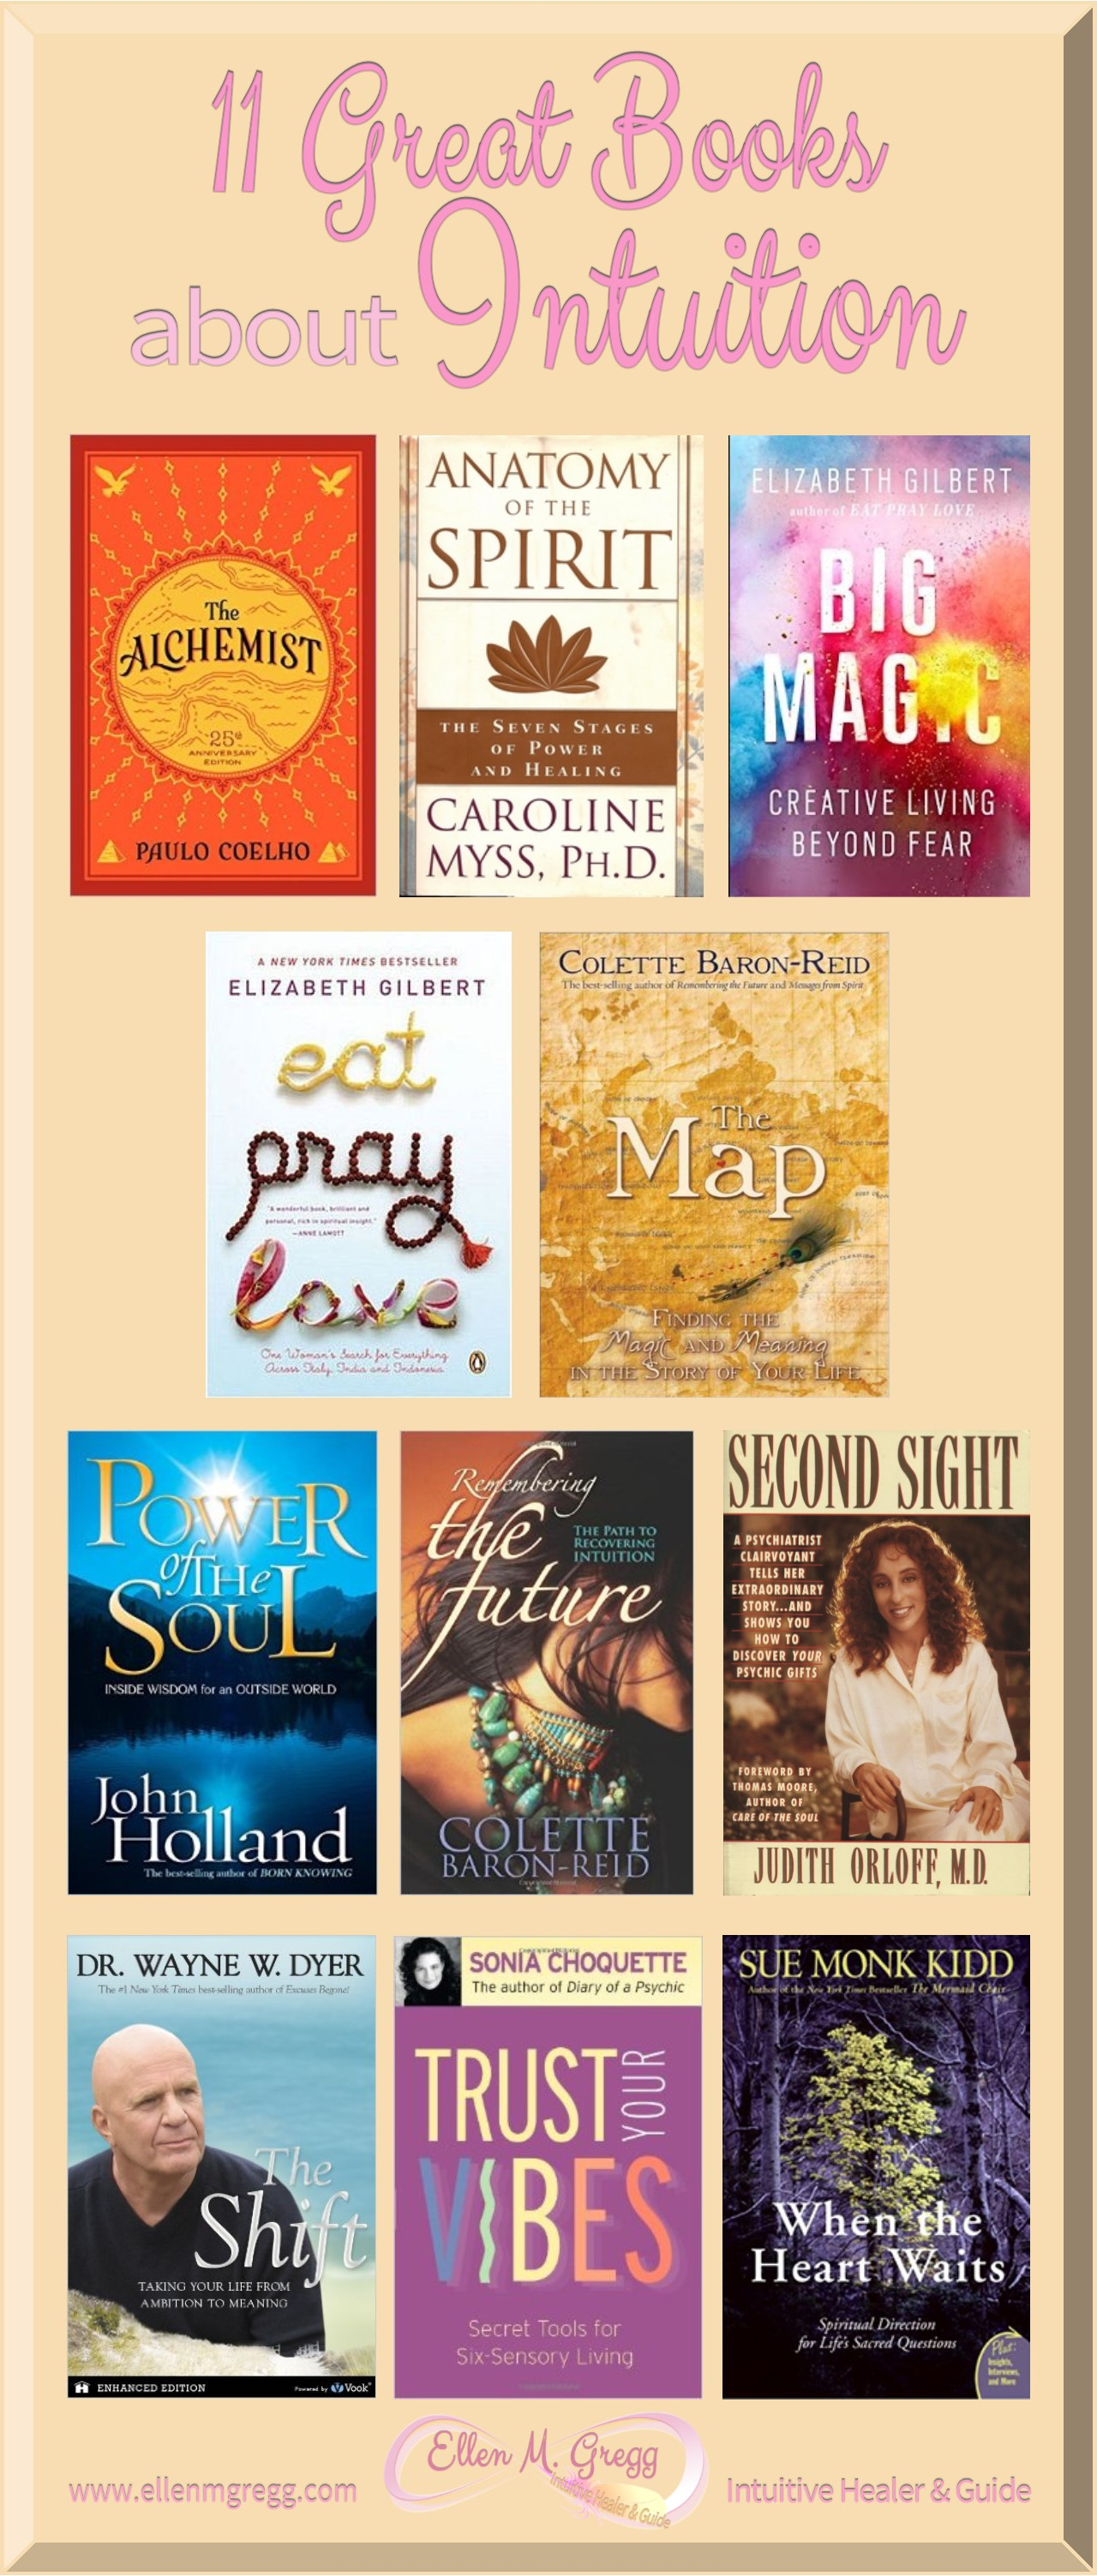 11 Great Books about Intuition ~ infographic | Some of the many. What are your favorites? | Ellen M. Gregg, Intuitive Healer & Guide